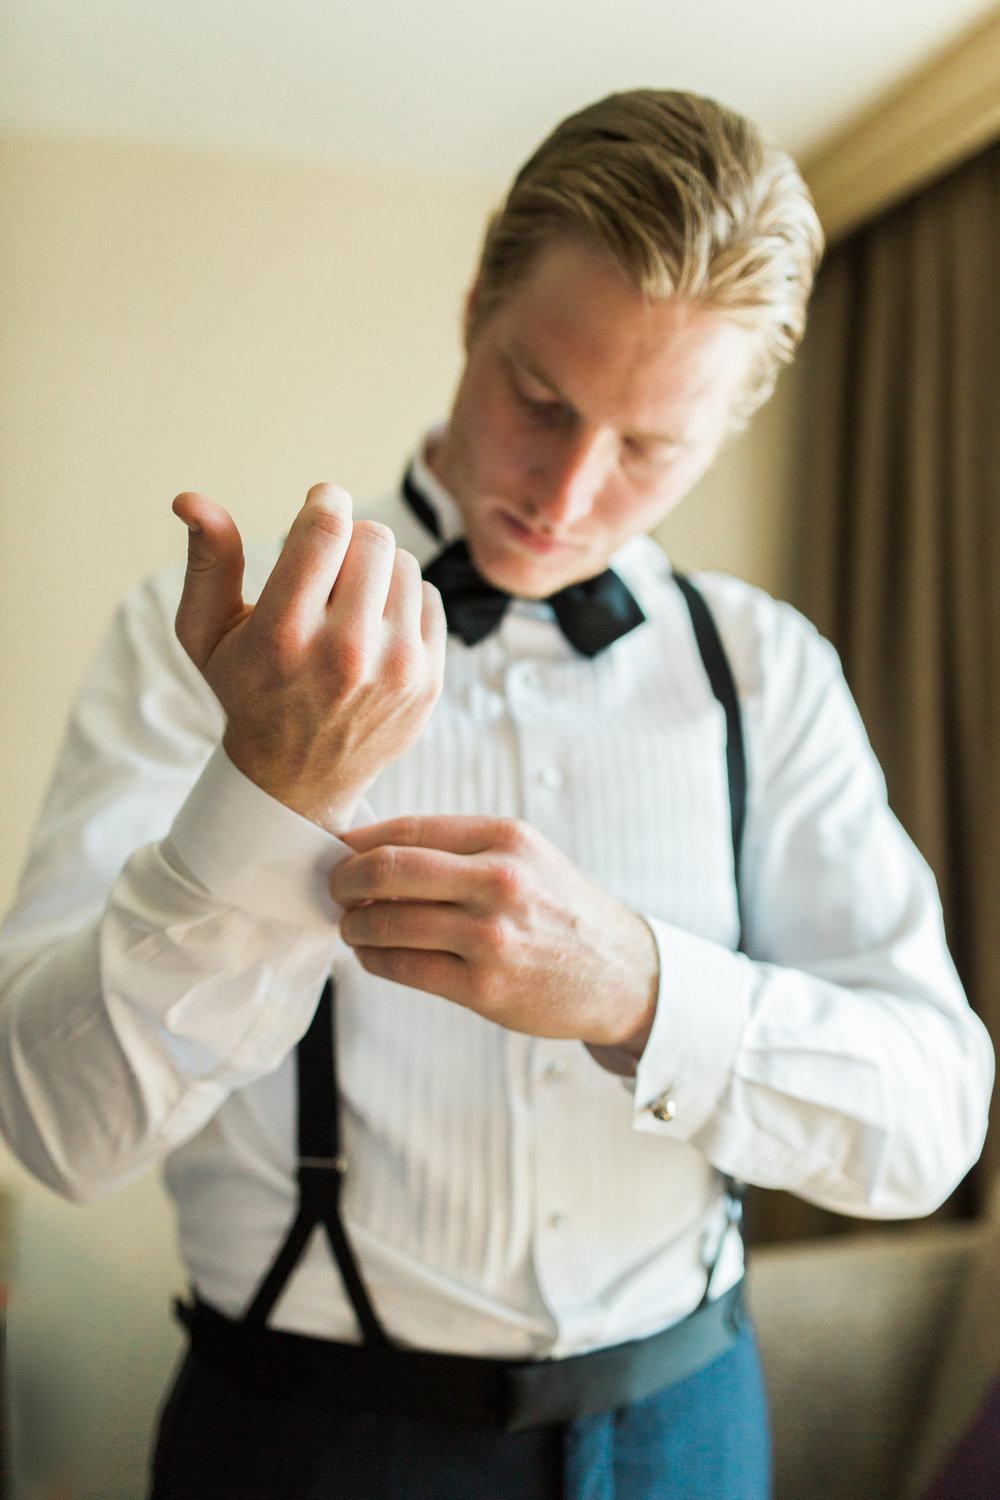 Groom with cufflink getting ready before his wedding